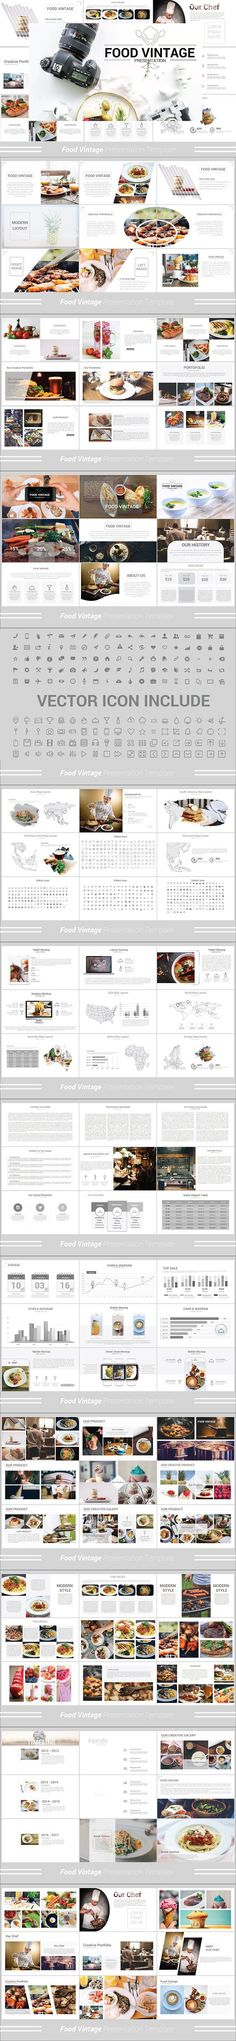 Food Vintage Powerpoint Template. Presentation Templates